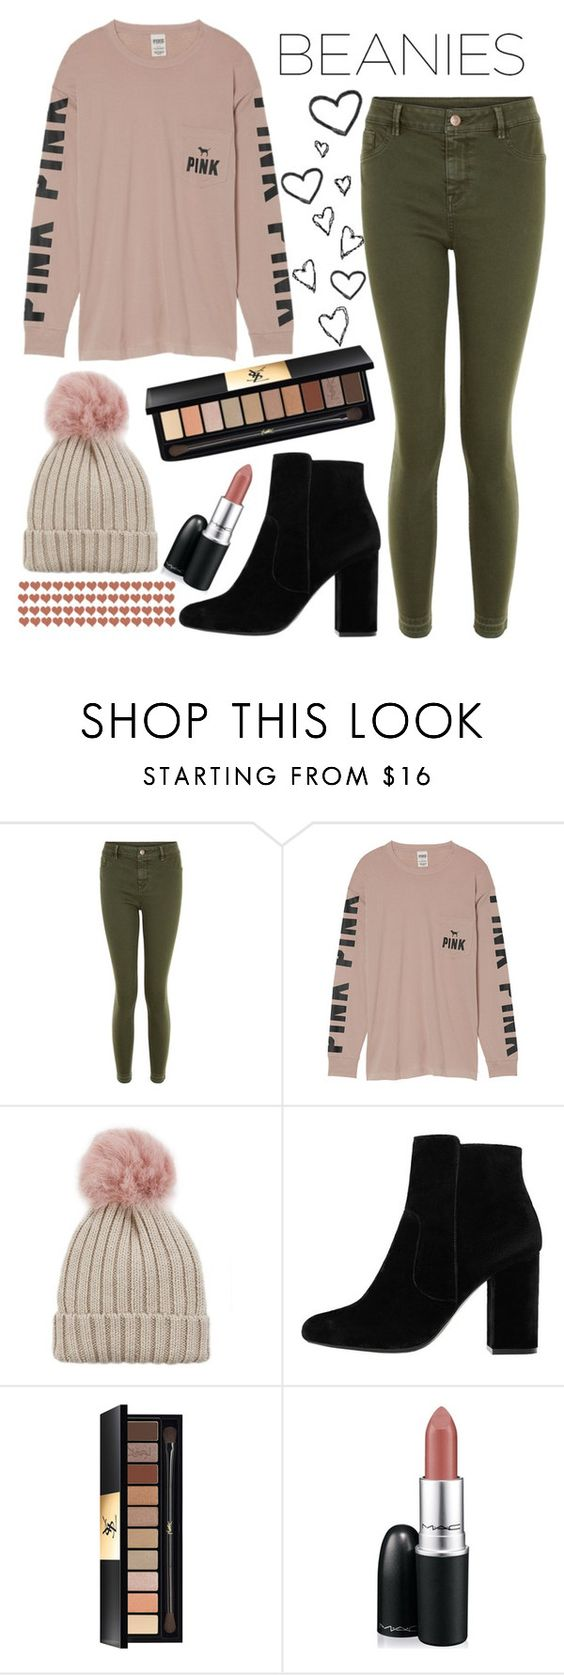 """""""Pom Pom"""" by lindseylyonss ❤ liked on Polyvore featuring New Look, Victoria's Secret, Jocelyn, MANGO, Yves Saint Laurent and MAC Cosmetics"""